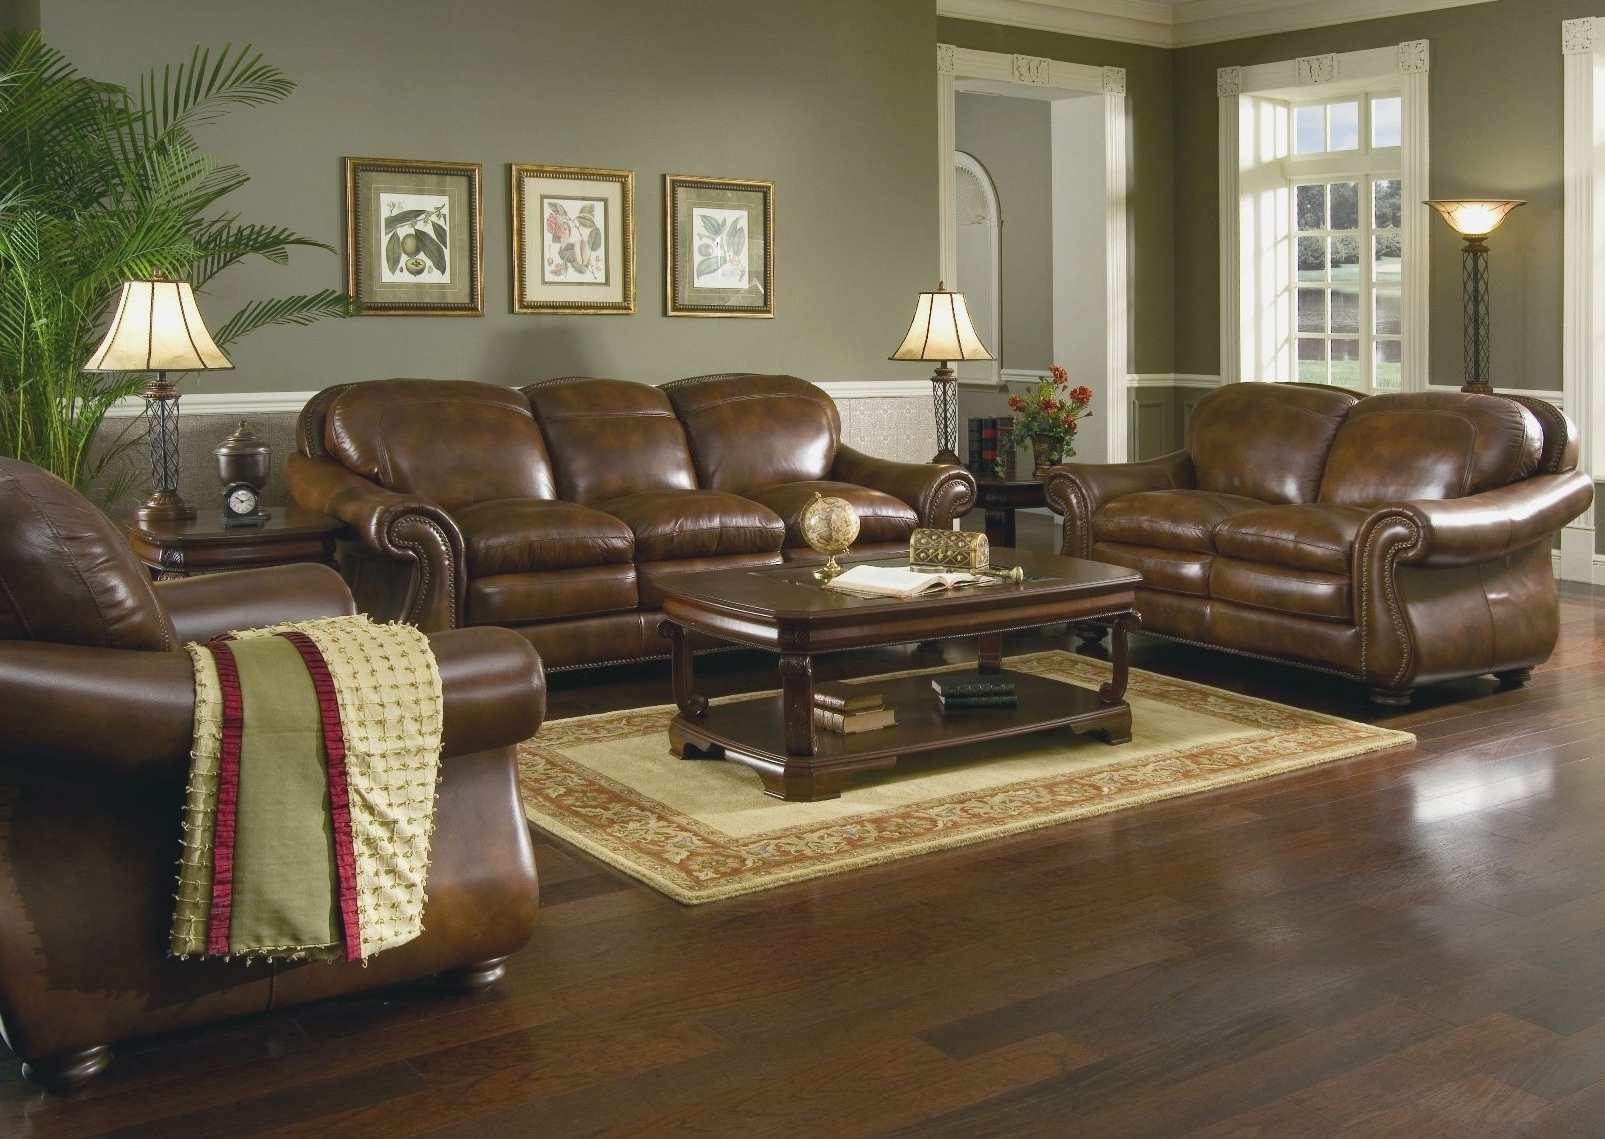 Popular Living Room : Dark Brown Couch Living Room Decor Relaxed Modern Regarding Brown Couch Wall Accents (Gallery 9 of 15)